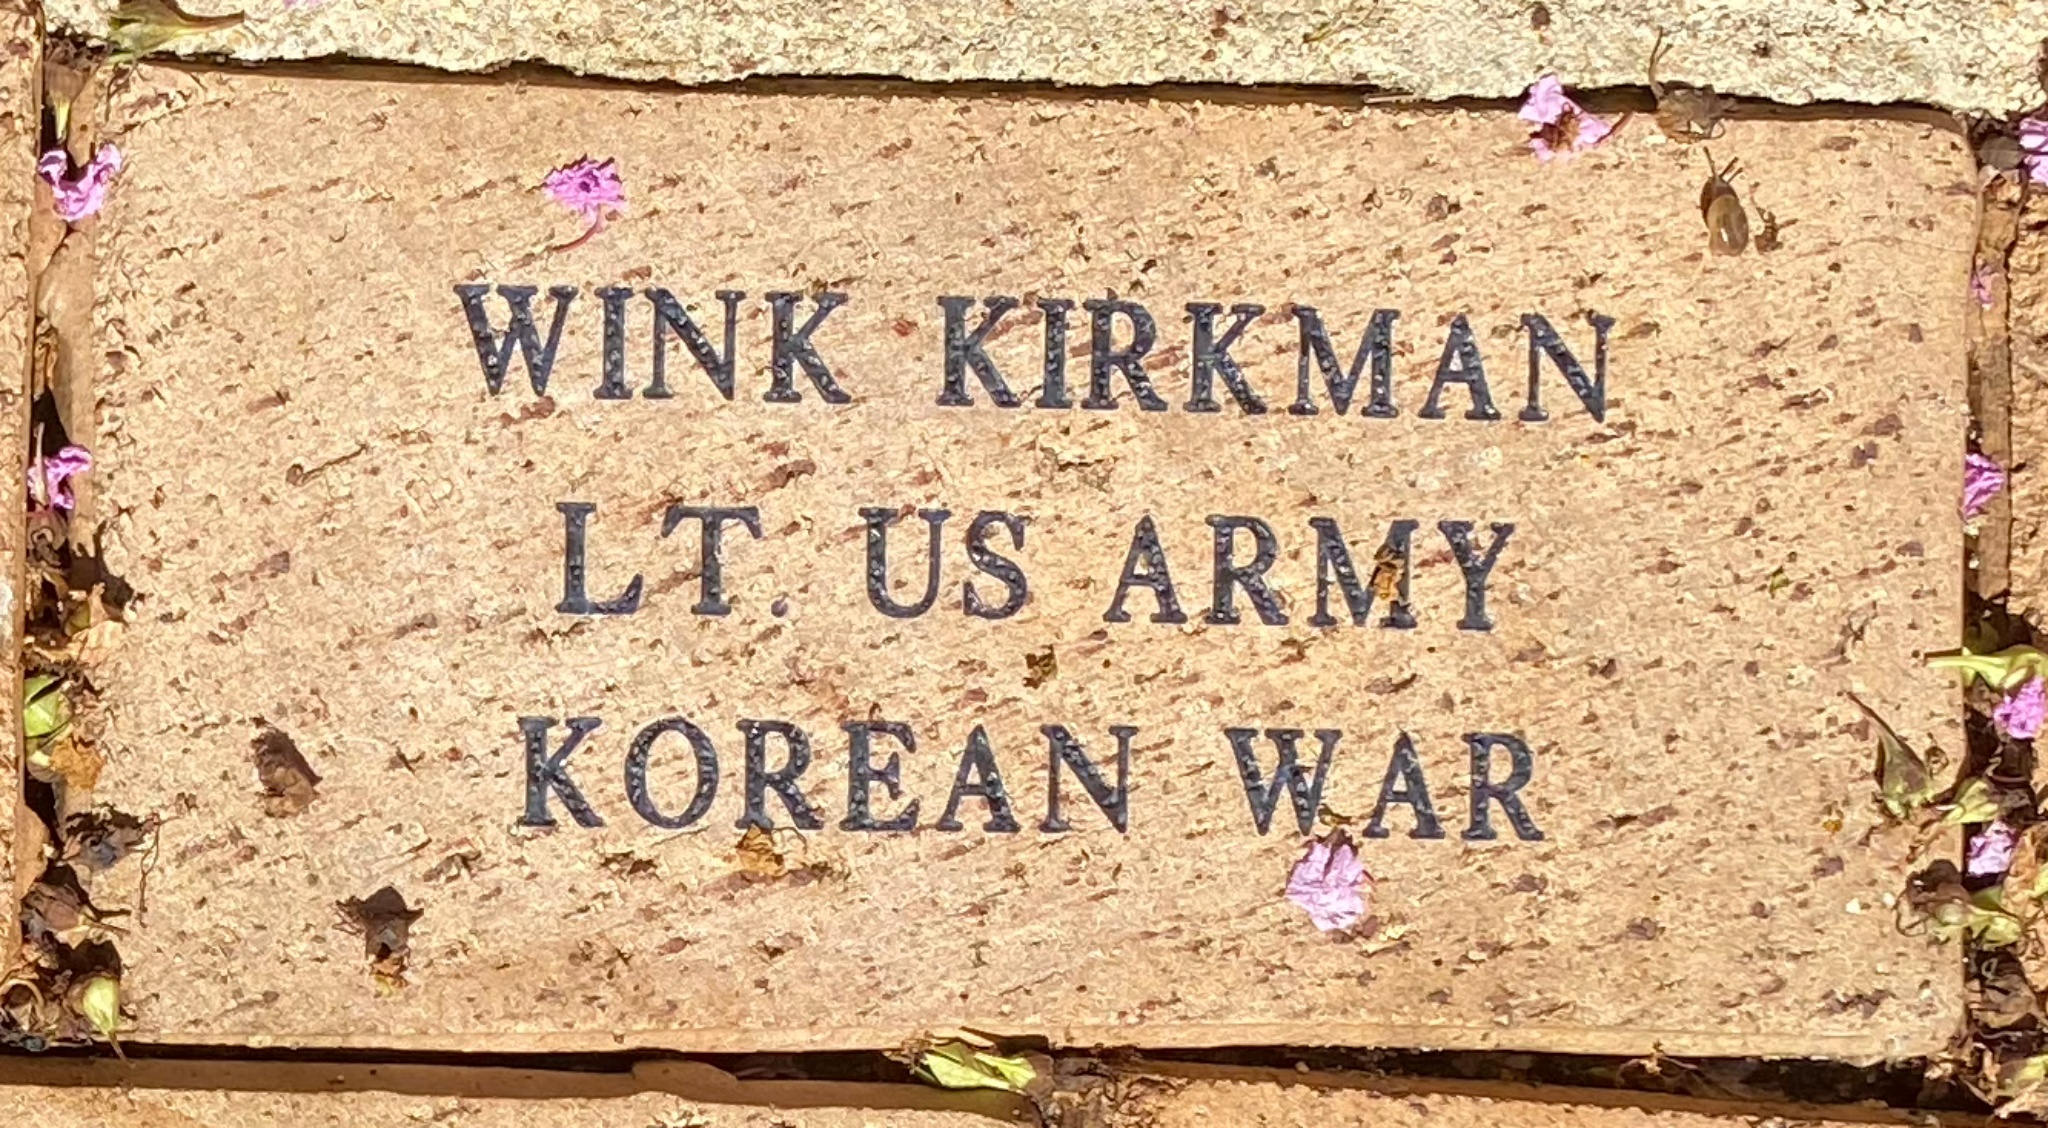 WINK KIRKMAN LT. US ARMY KOREAN WAR